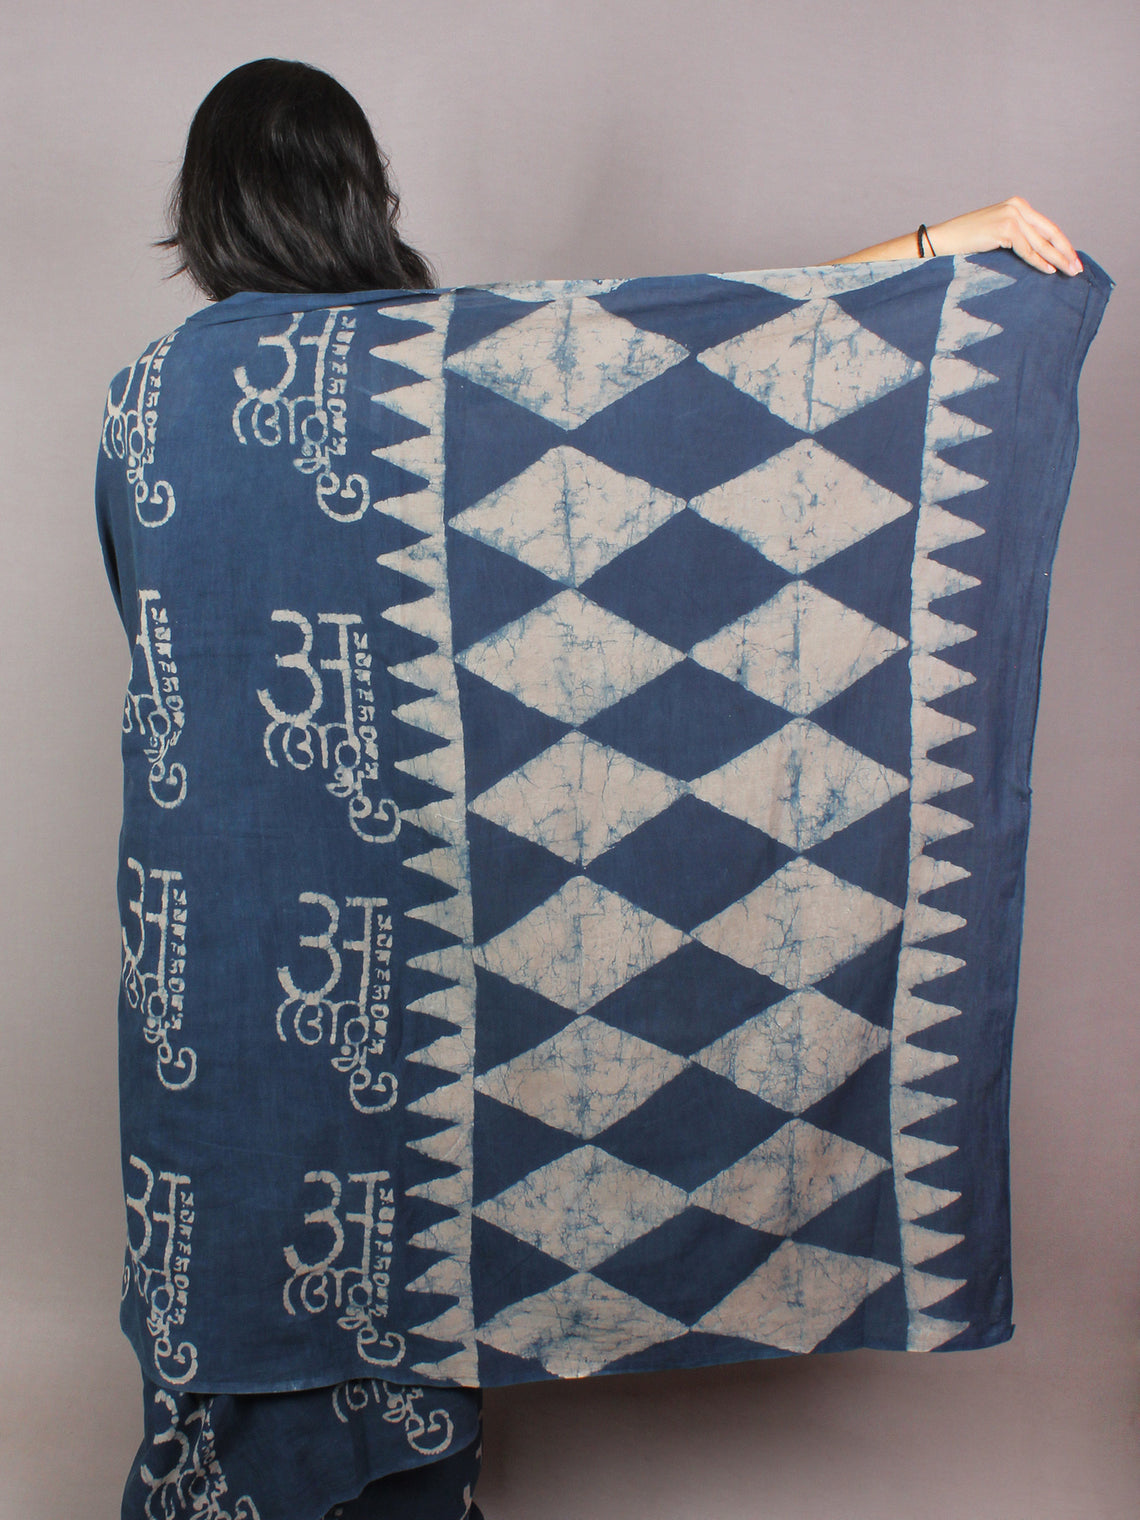 Indigo Beige Cotton Hand Block Printed Saree With faded texture in Natural Colors - S03170757